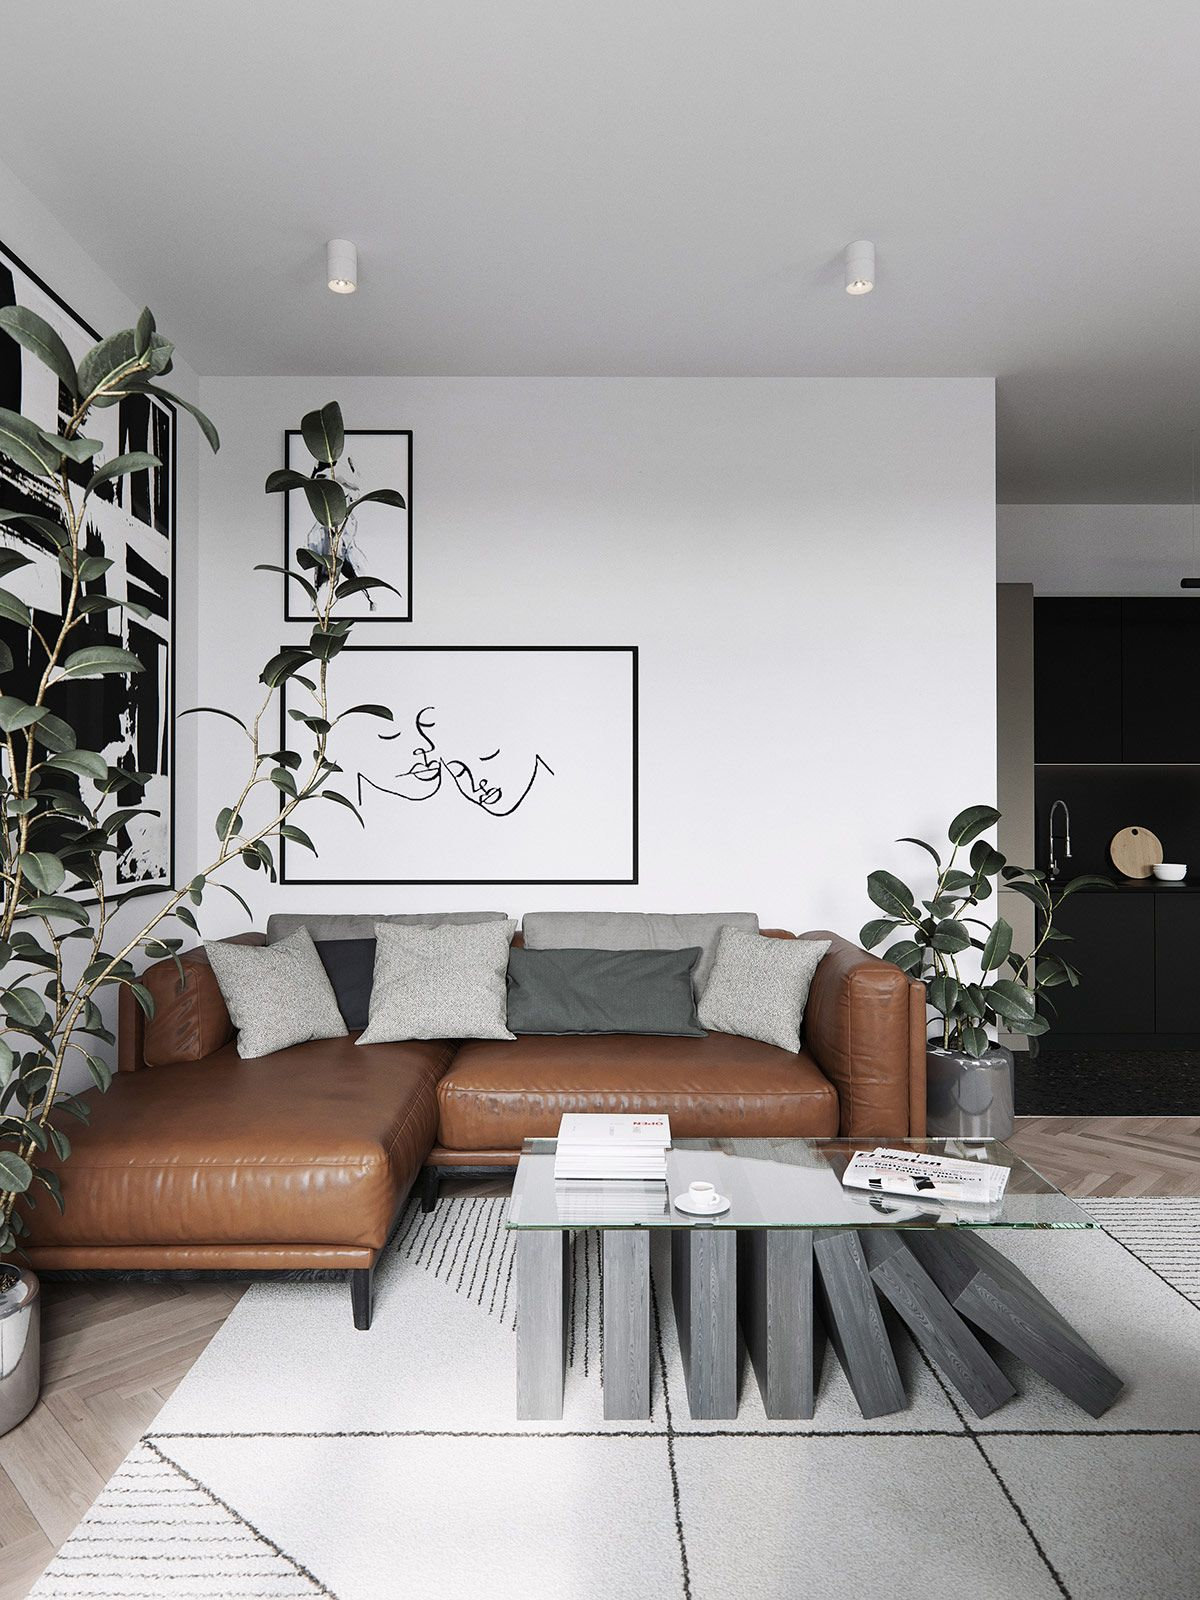 3 Homes Inspired by Different Takes on Nordic Interior Design Themes